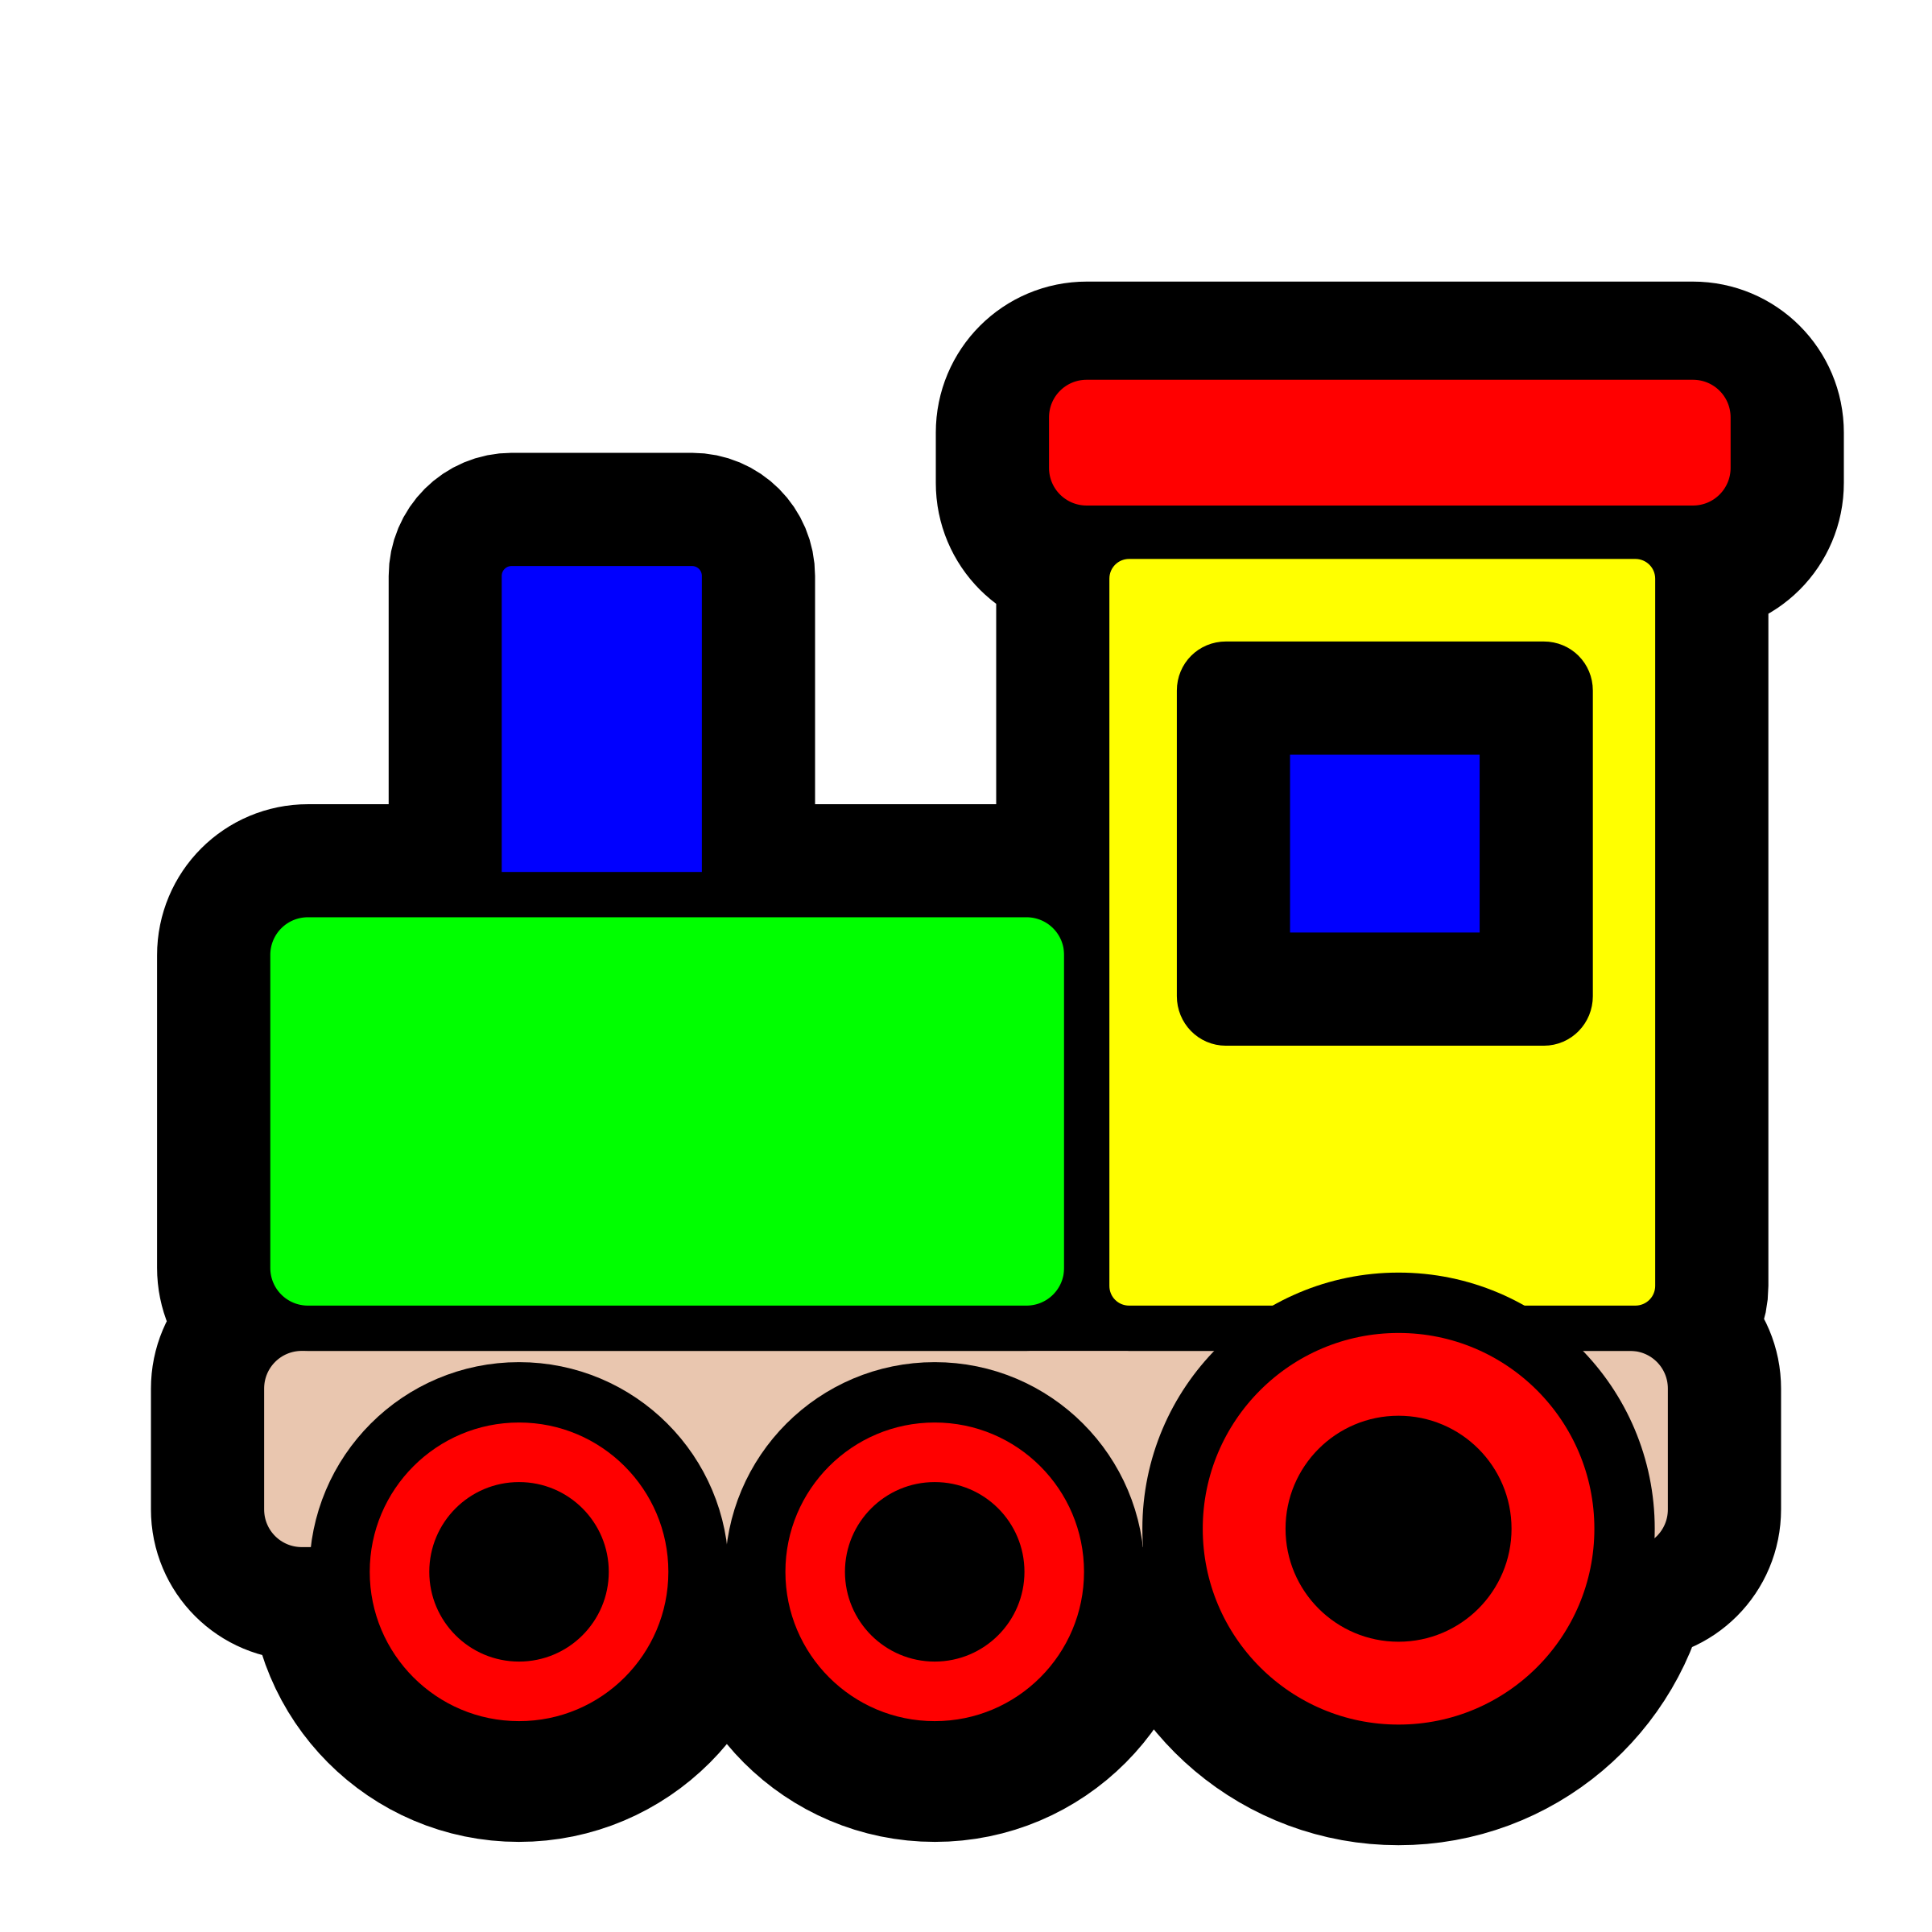 Toy train icon by pitr